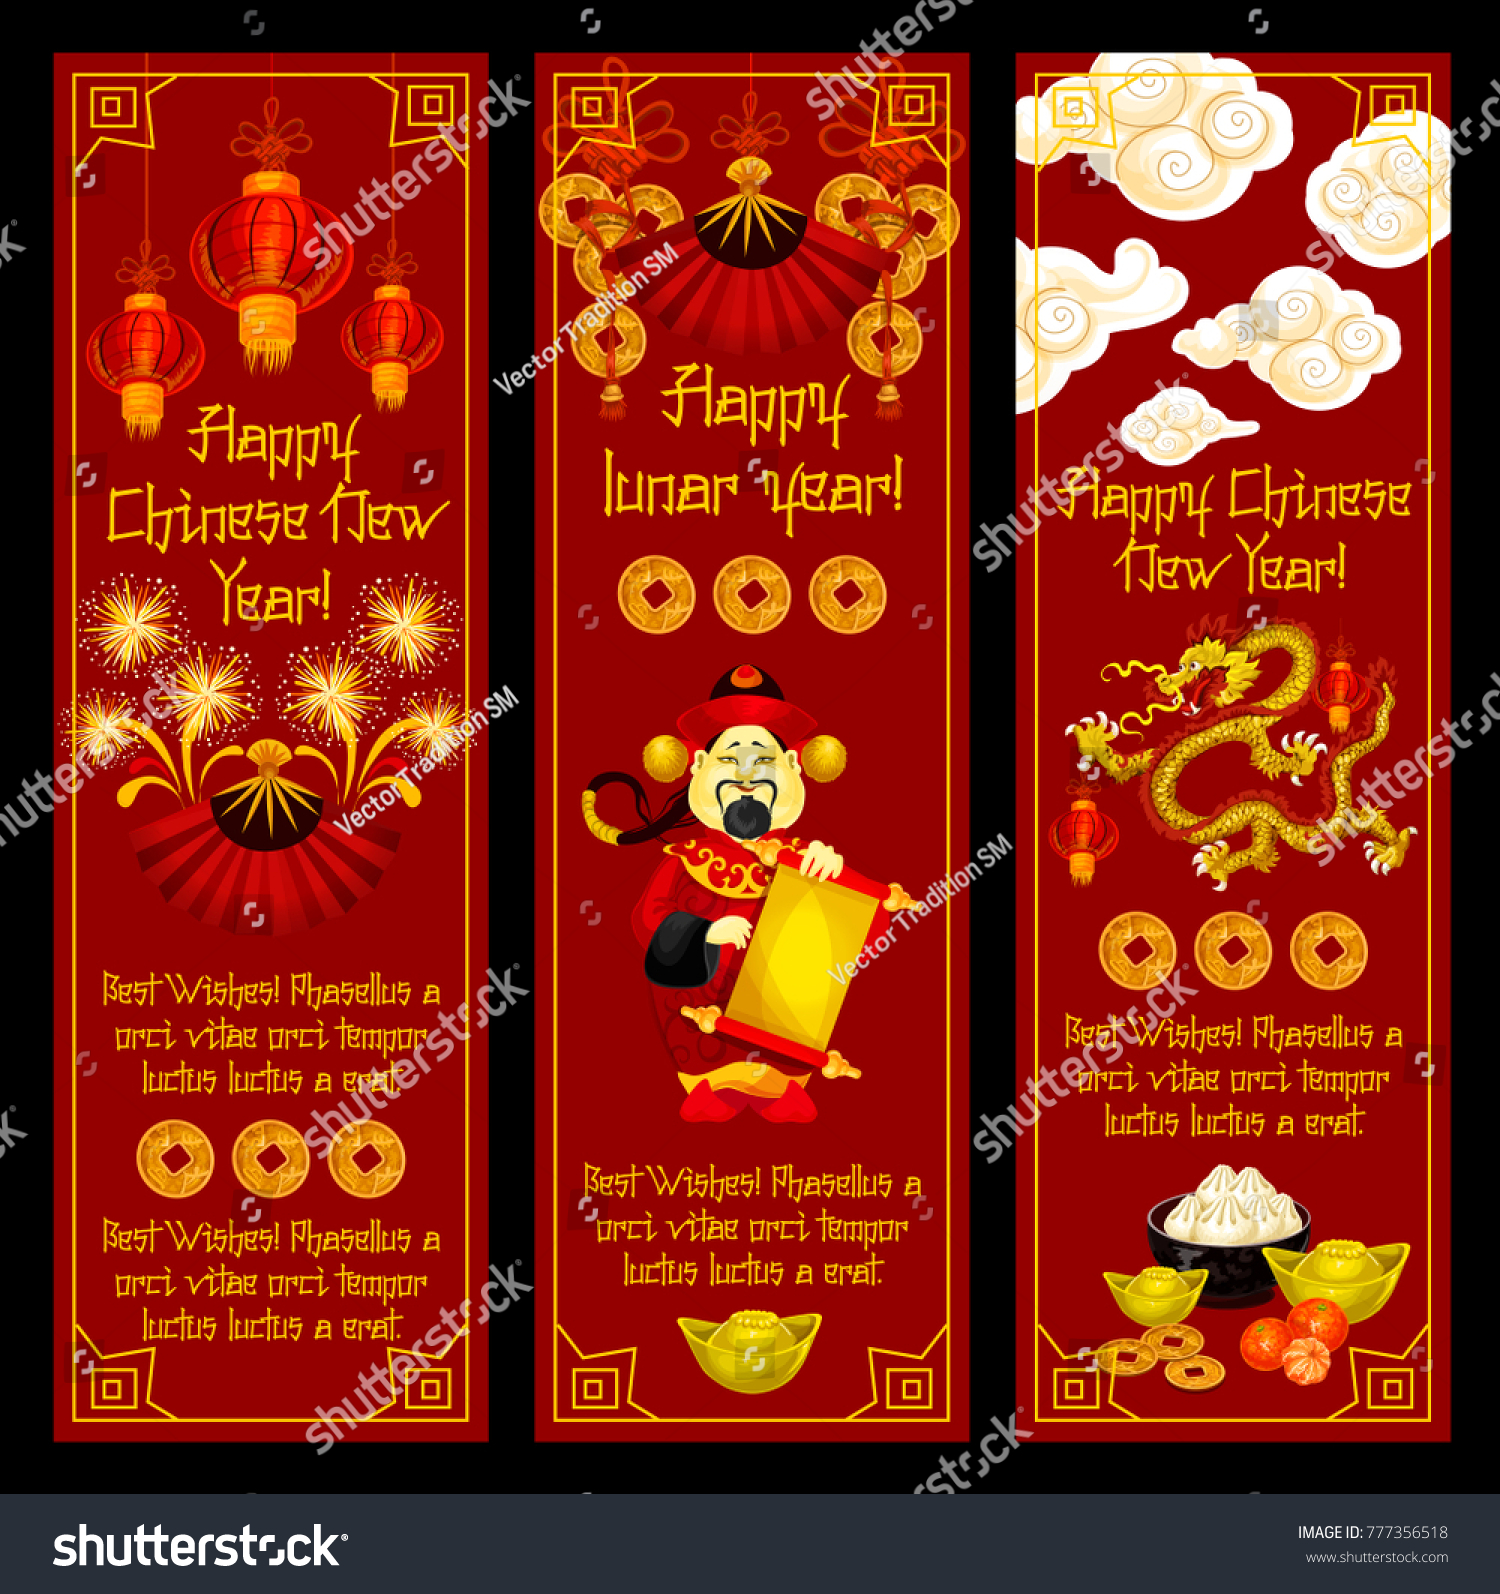 happy chinese lunar new year greeting banners of traditional chinese symbols and decorations vector golden